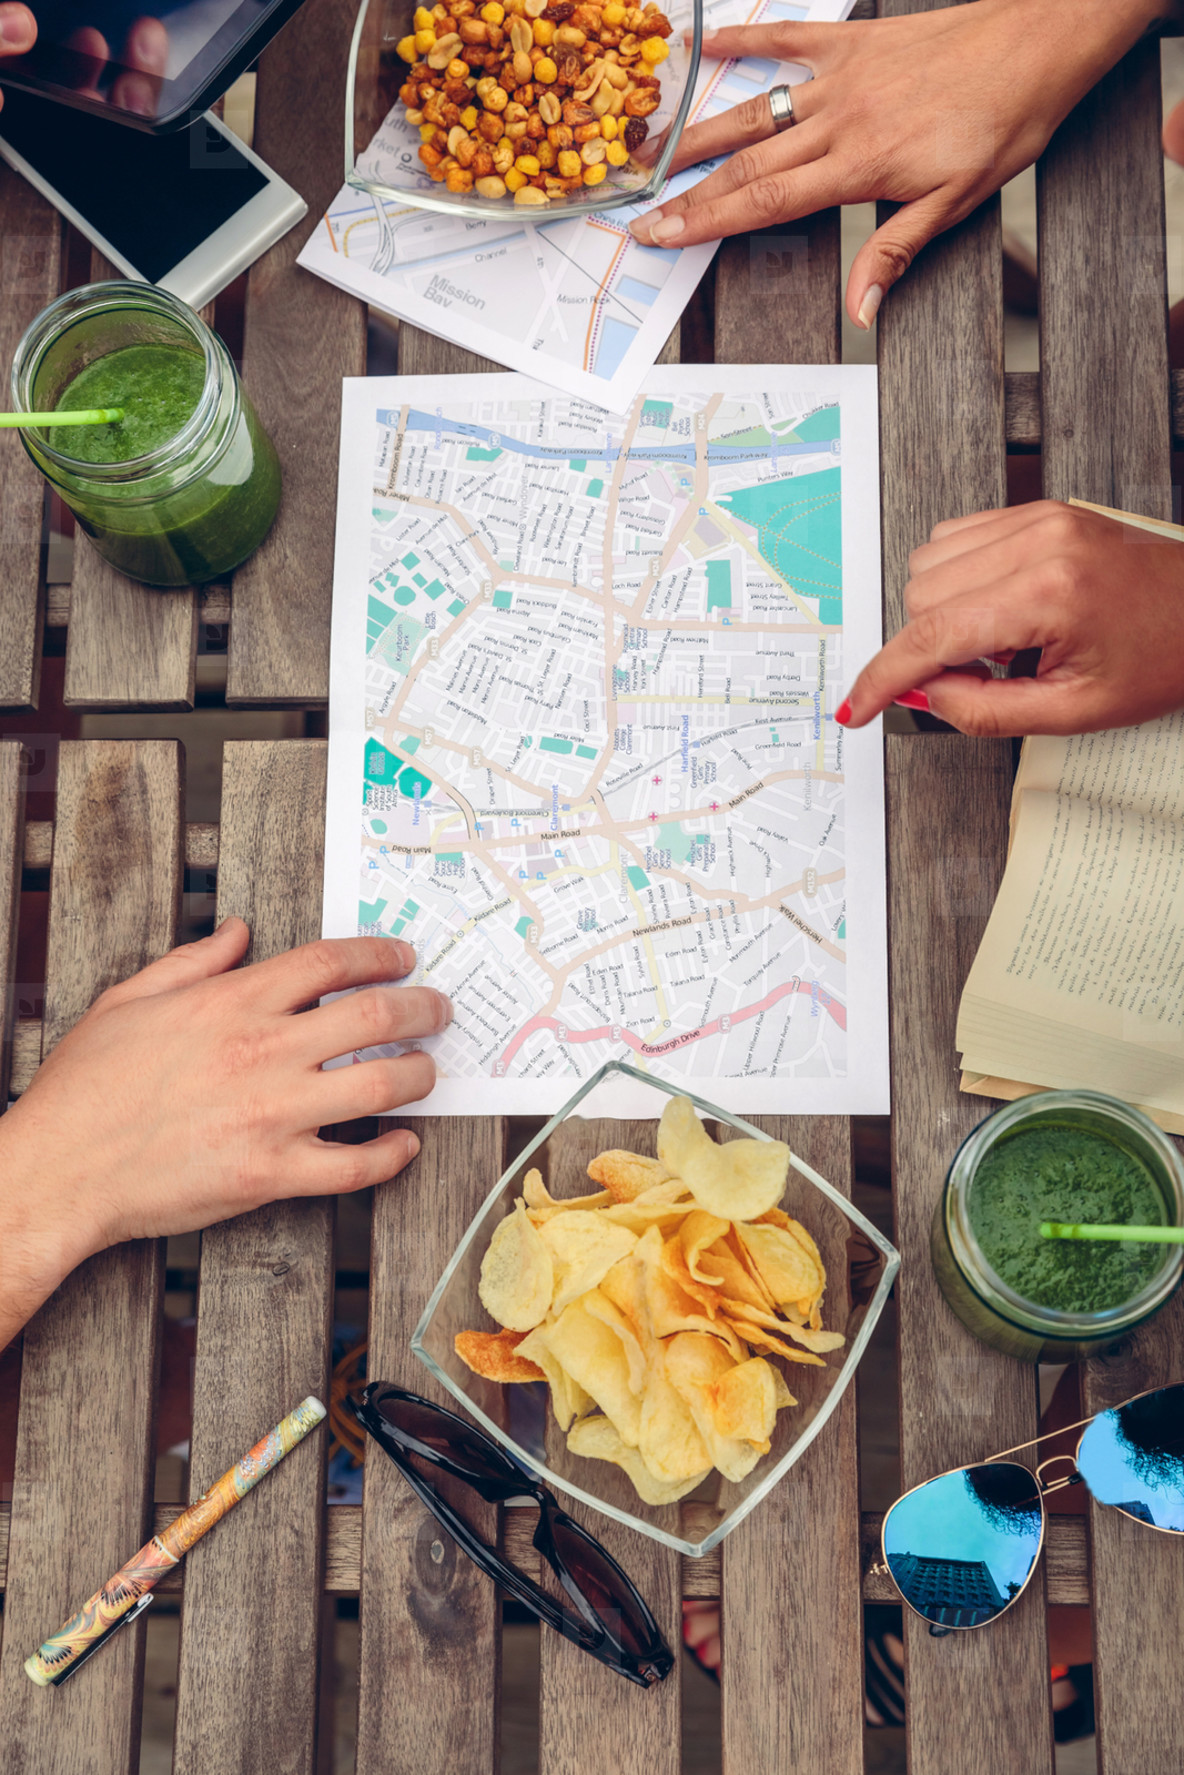 People hands over map on a table